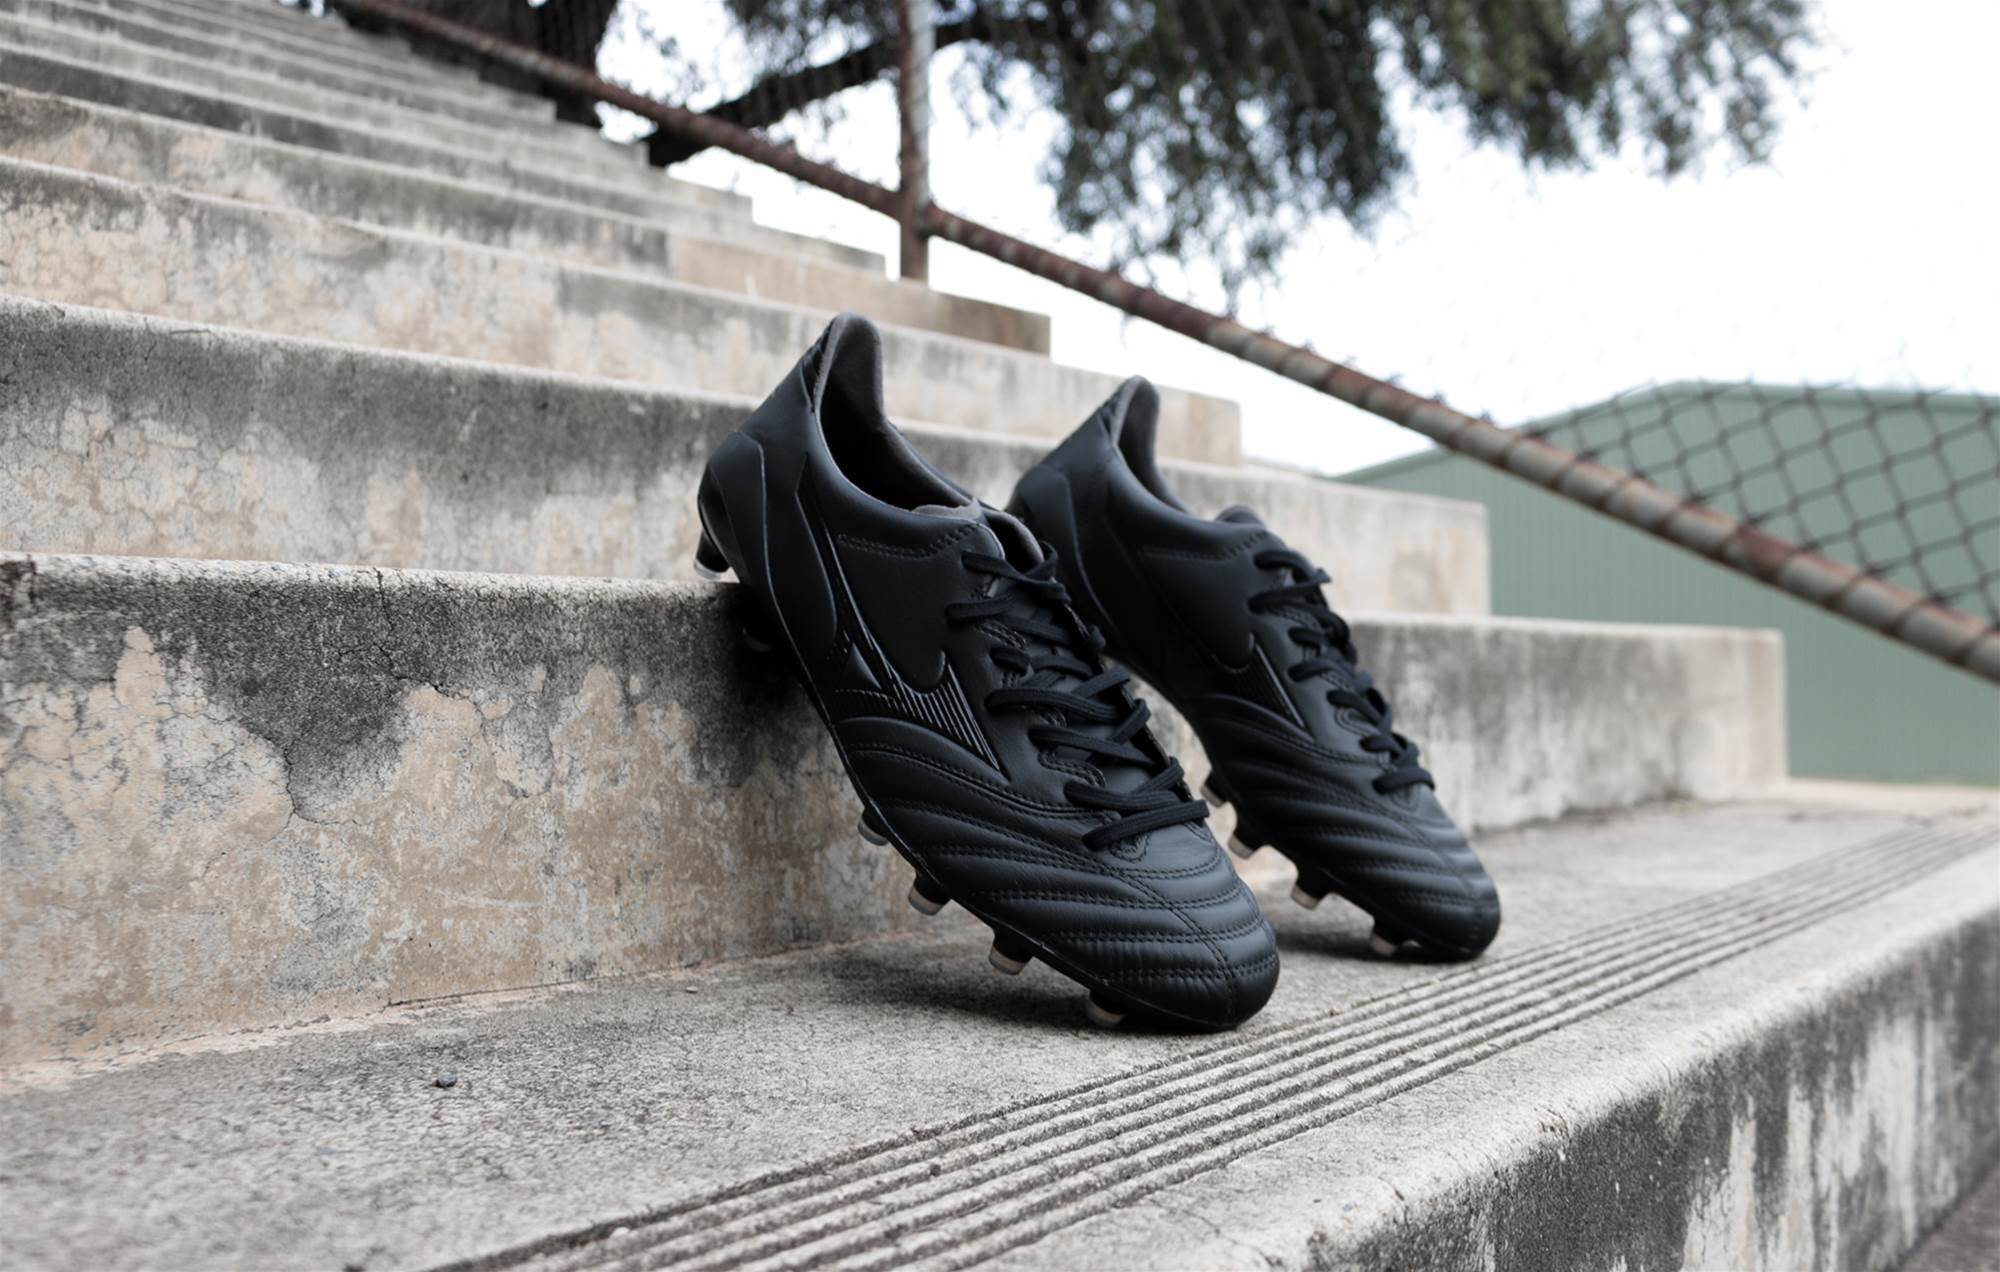 Gallery: Mizuno's deadly blackout Morelia Neo II